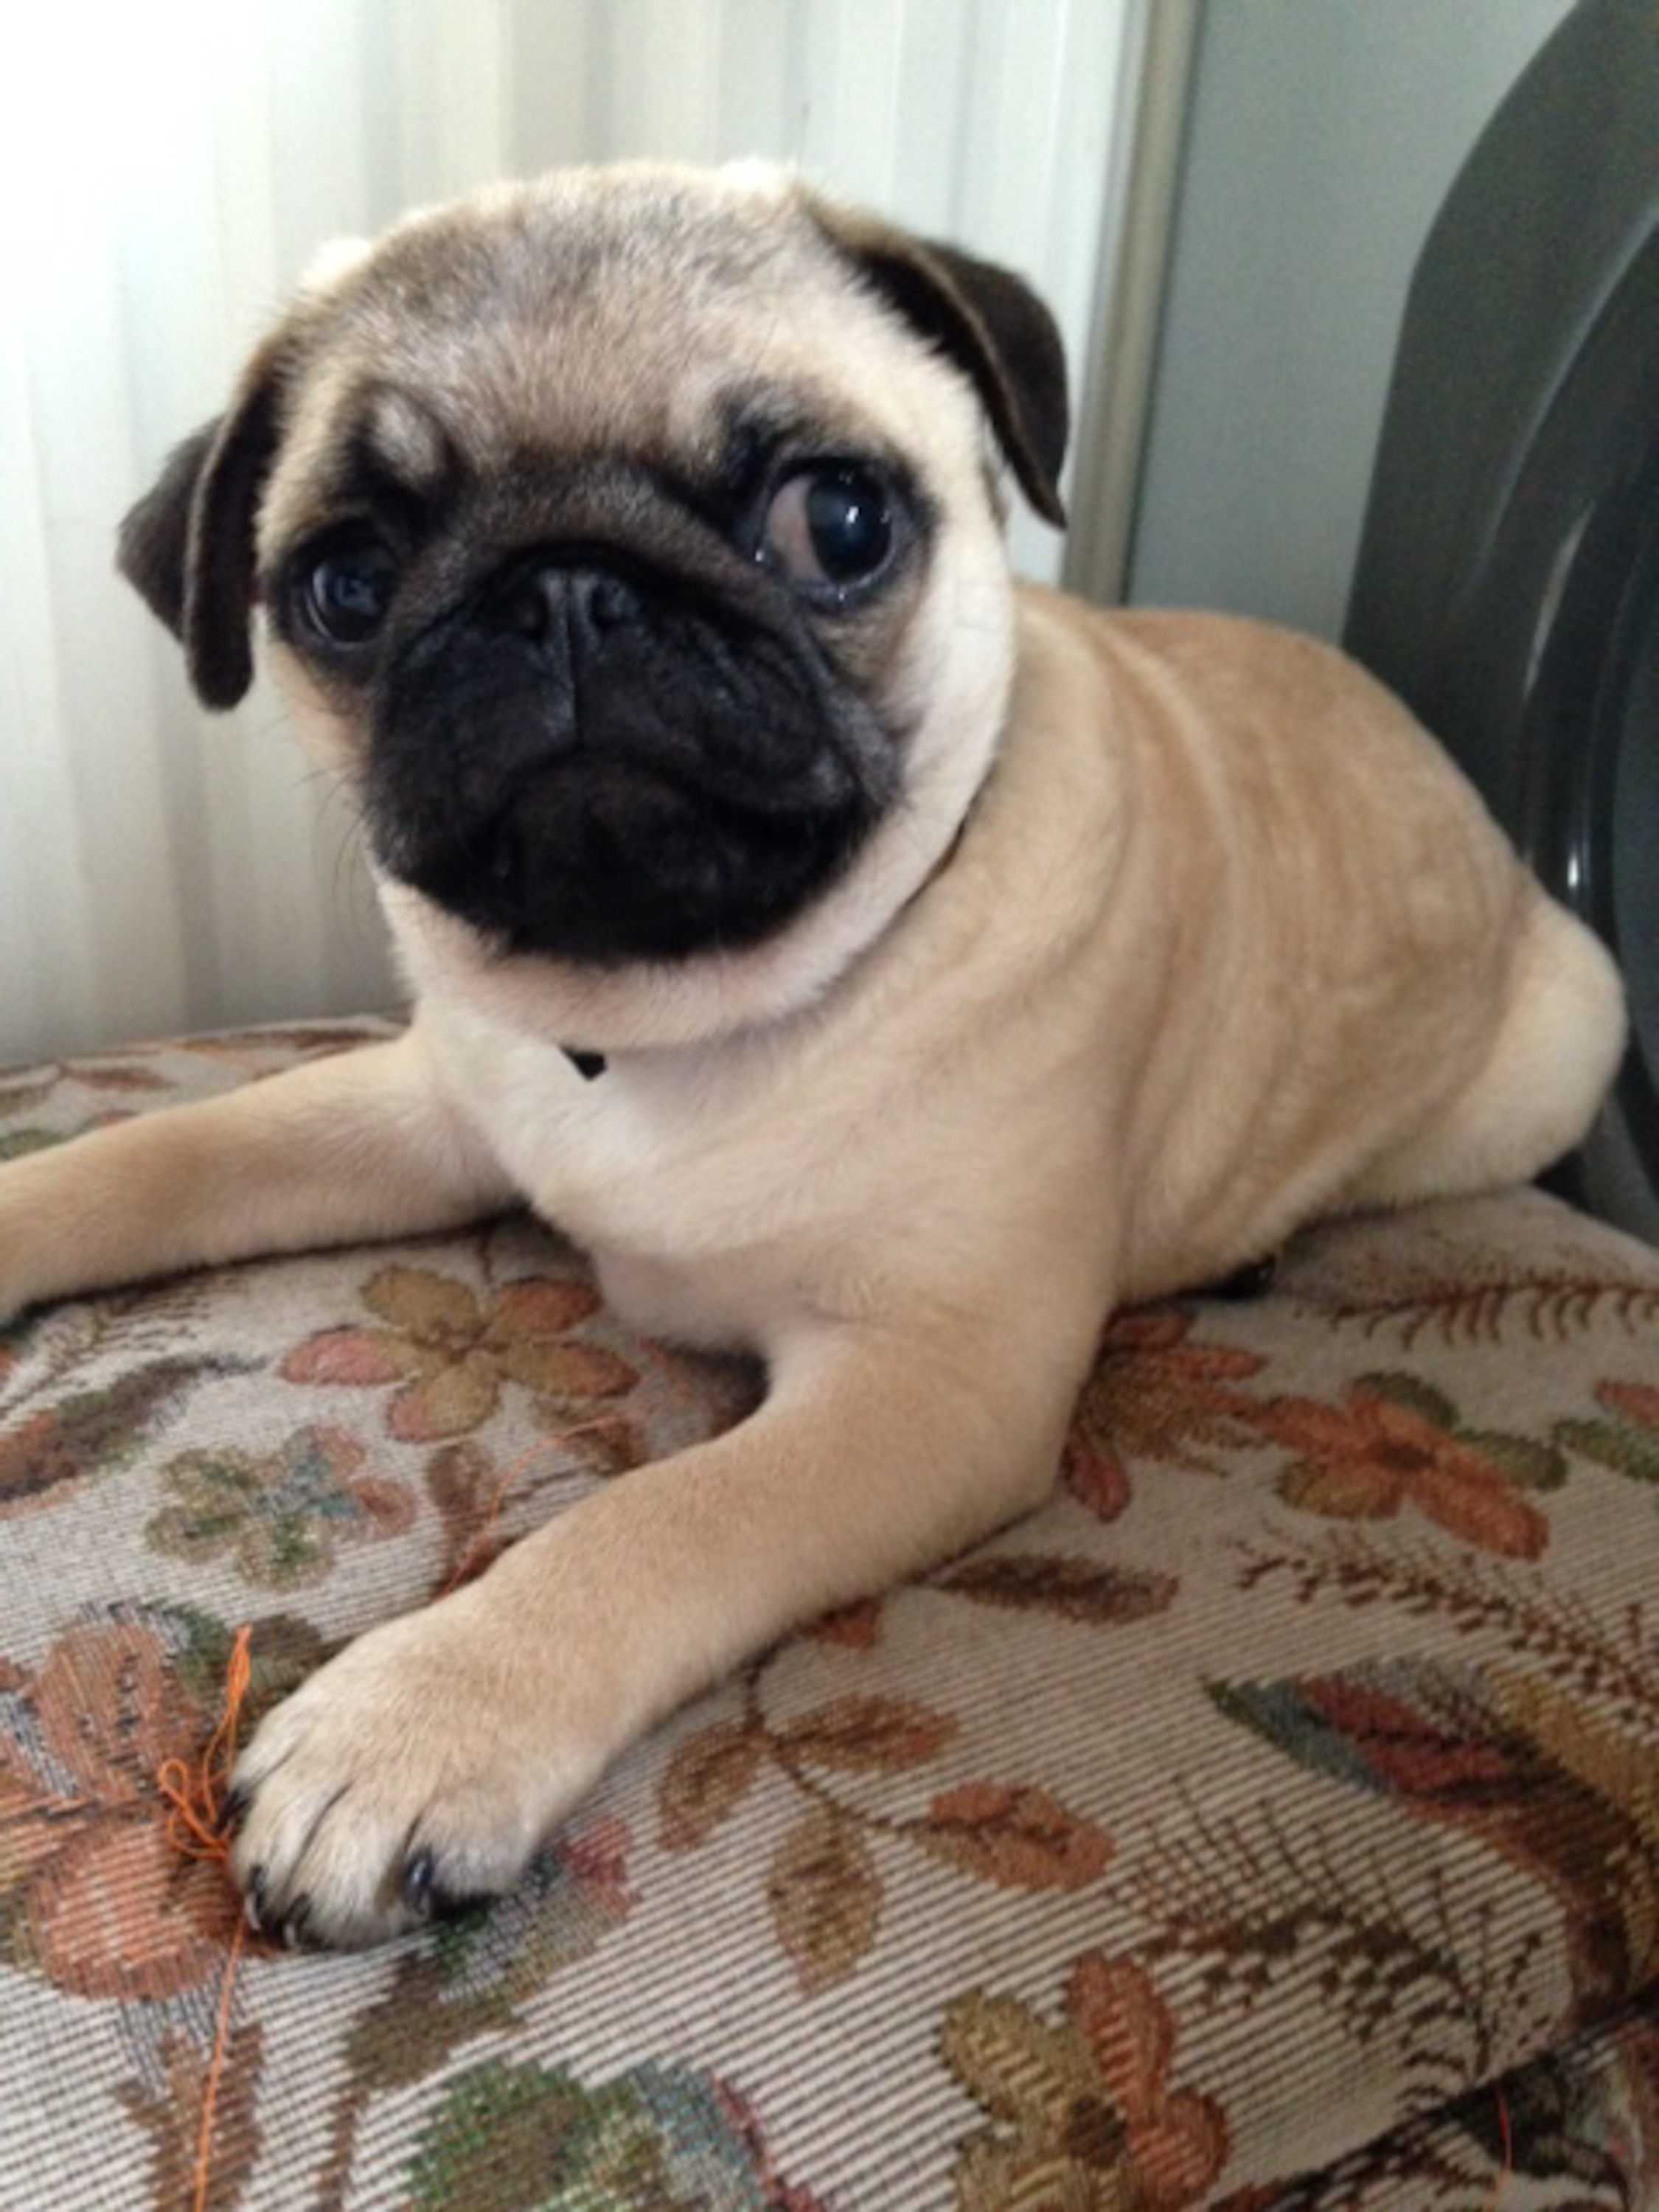 Bromley family left 'devastated' after unknown woman 'throws pet pug into car and drives off'